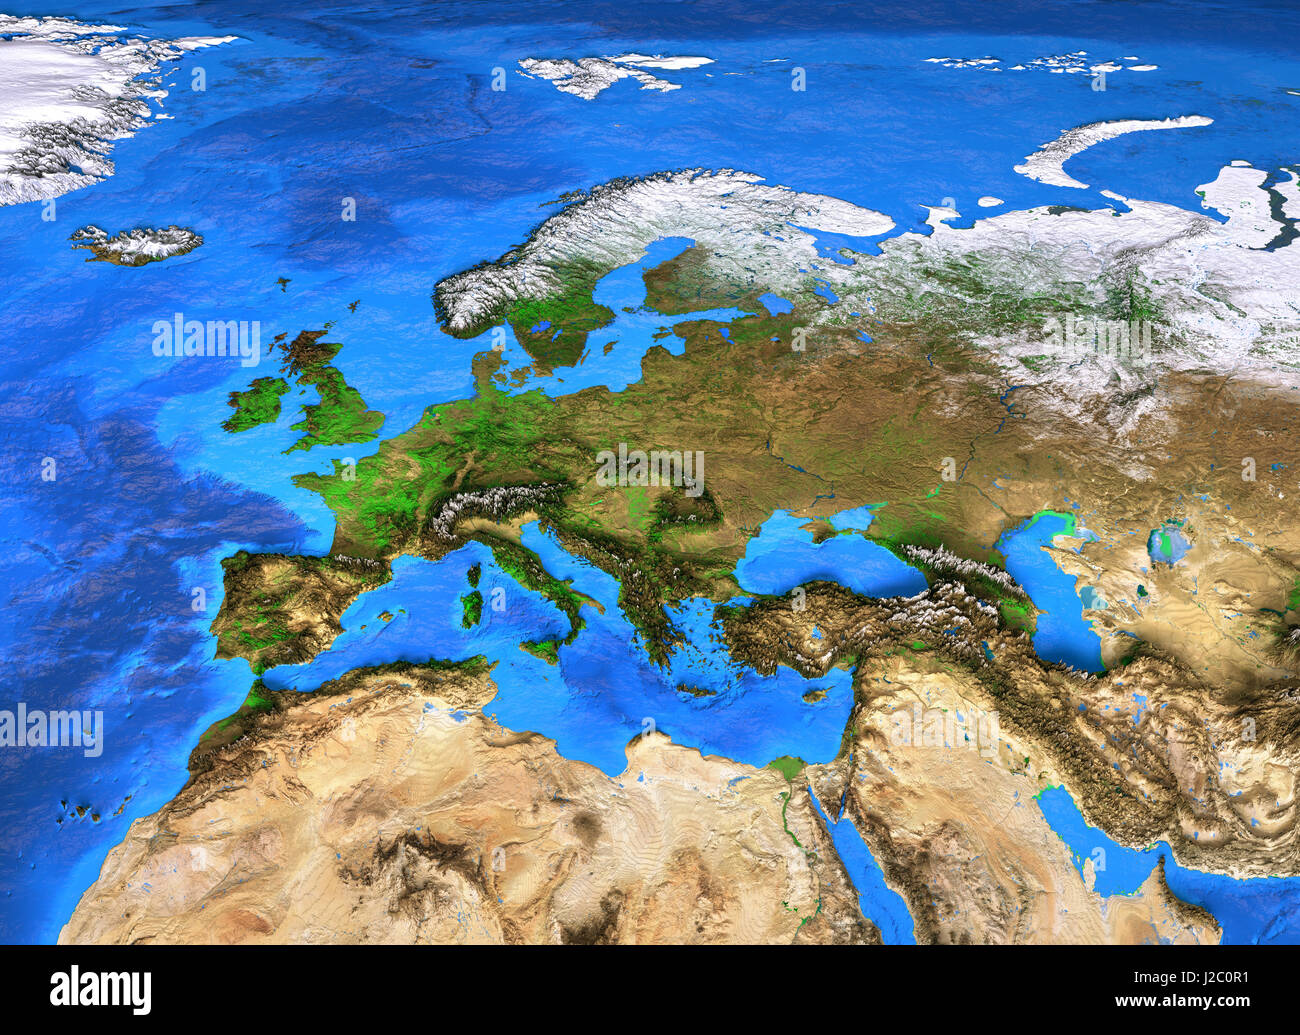 Europe map. Detailed satellite view of the Earth and its landforms on